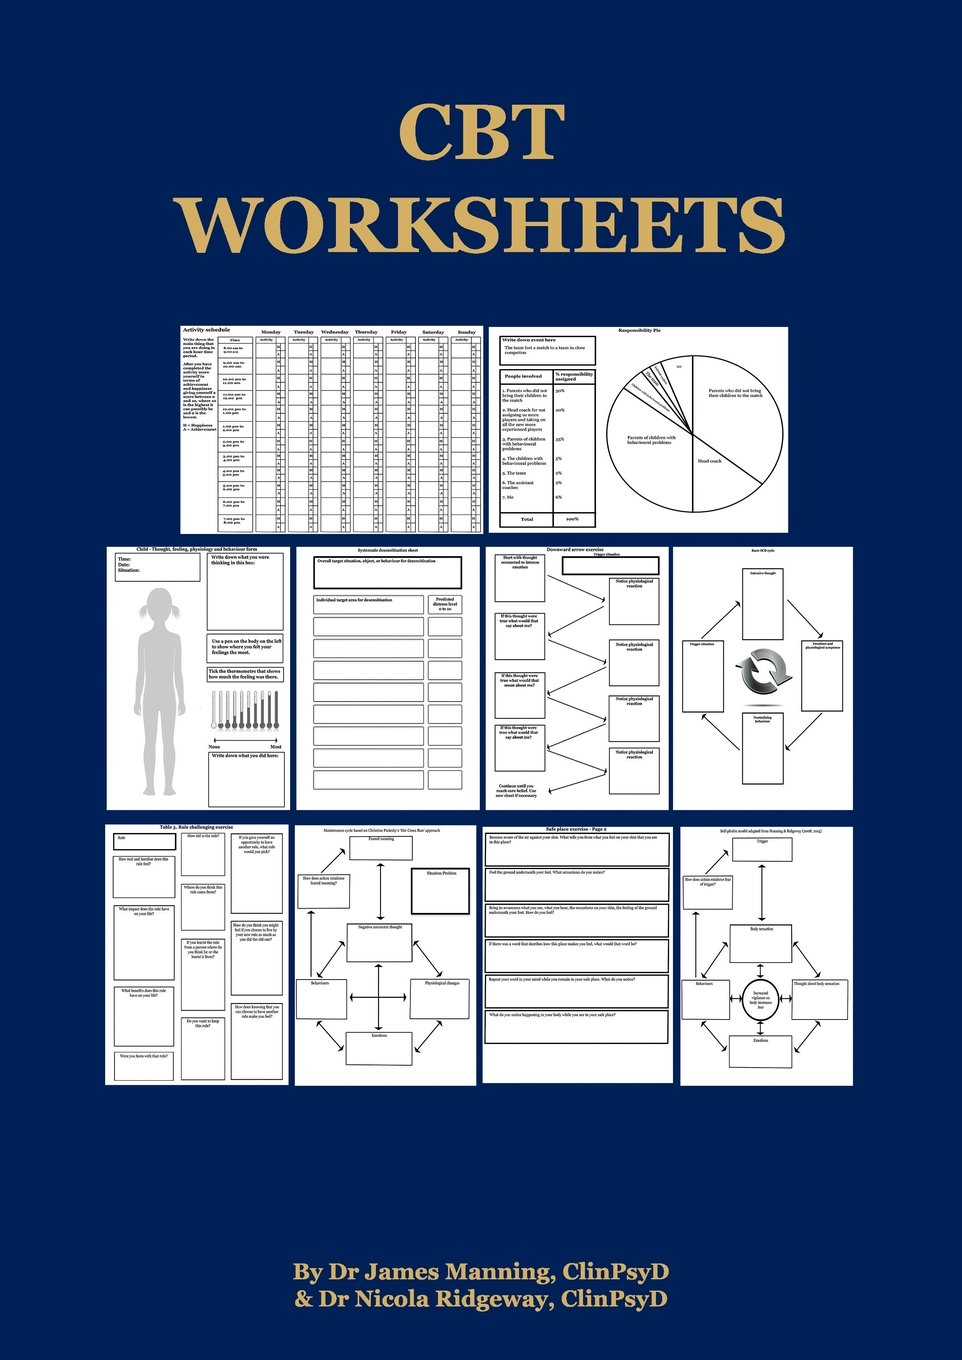 worksheet Cbt E Worksheets cbt worksheets for therapists in training formulation padesky hot cross bun thought reco